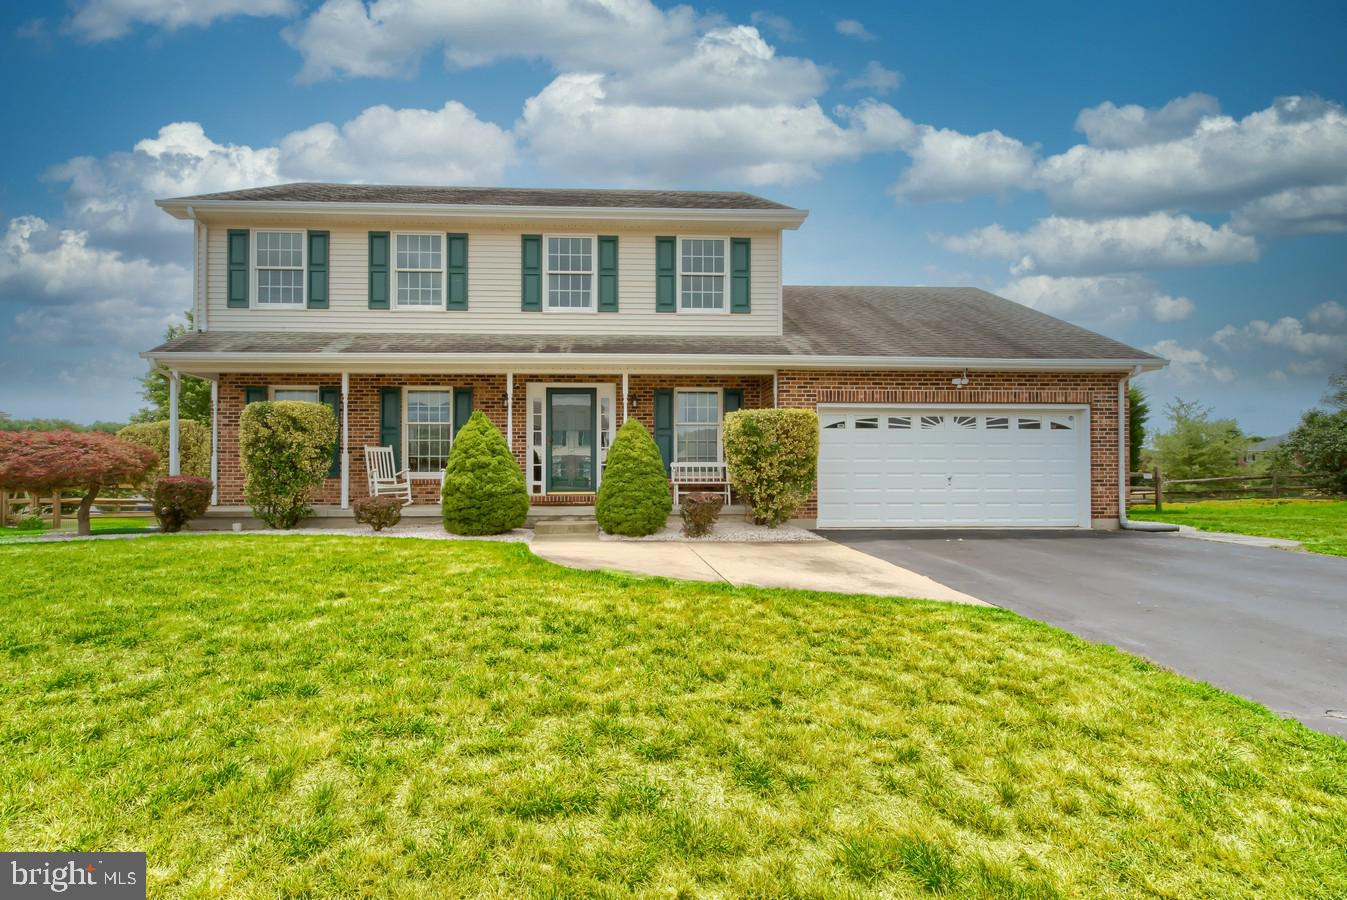 Welcome home to 11 Biltmore Ct. Located in Mansion Farms, this quality built RC Peoples home has bee